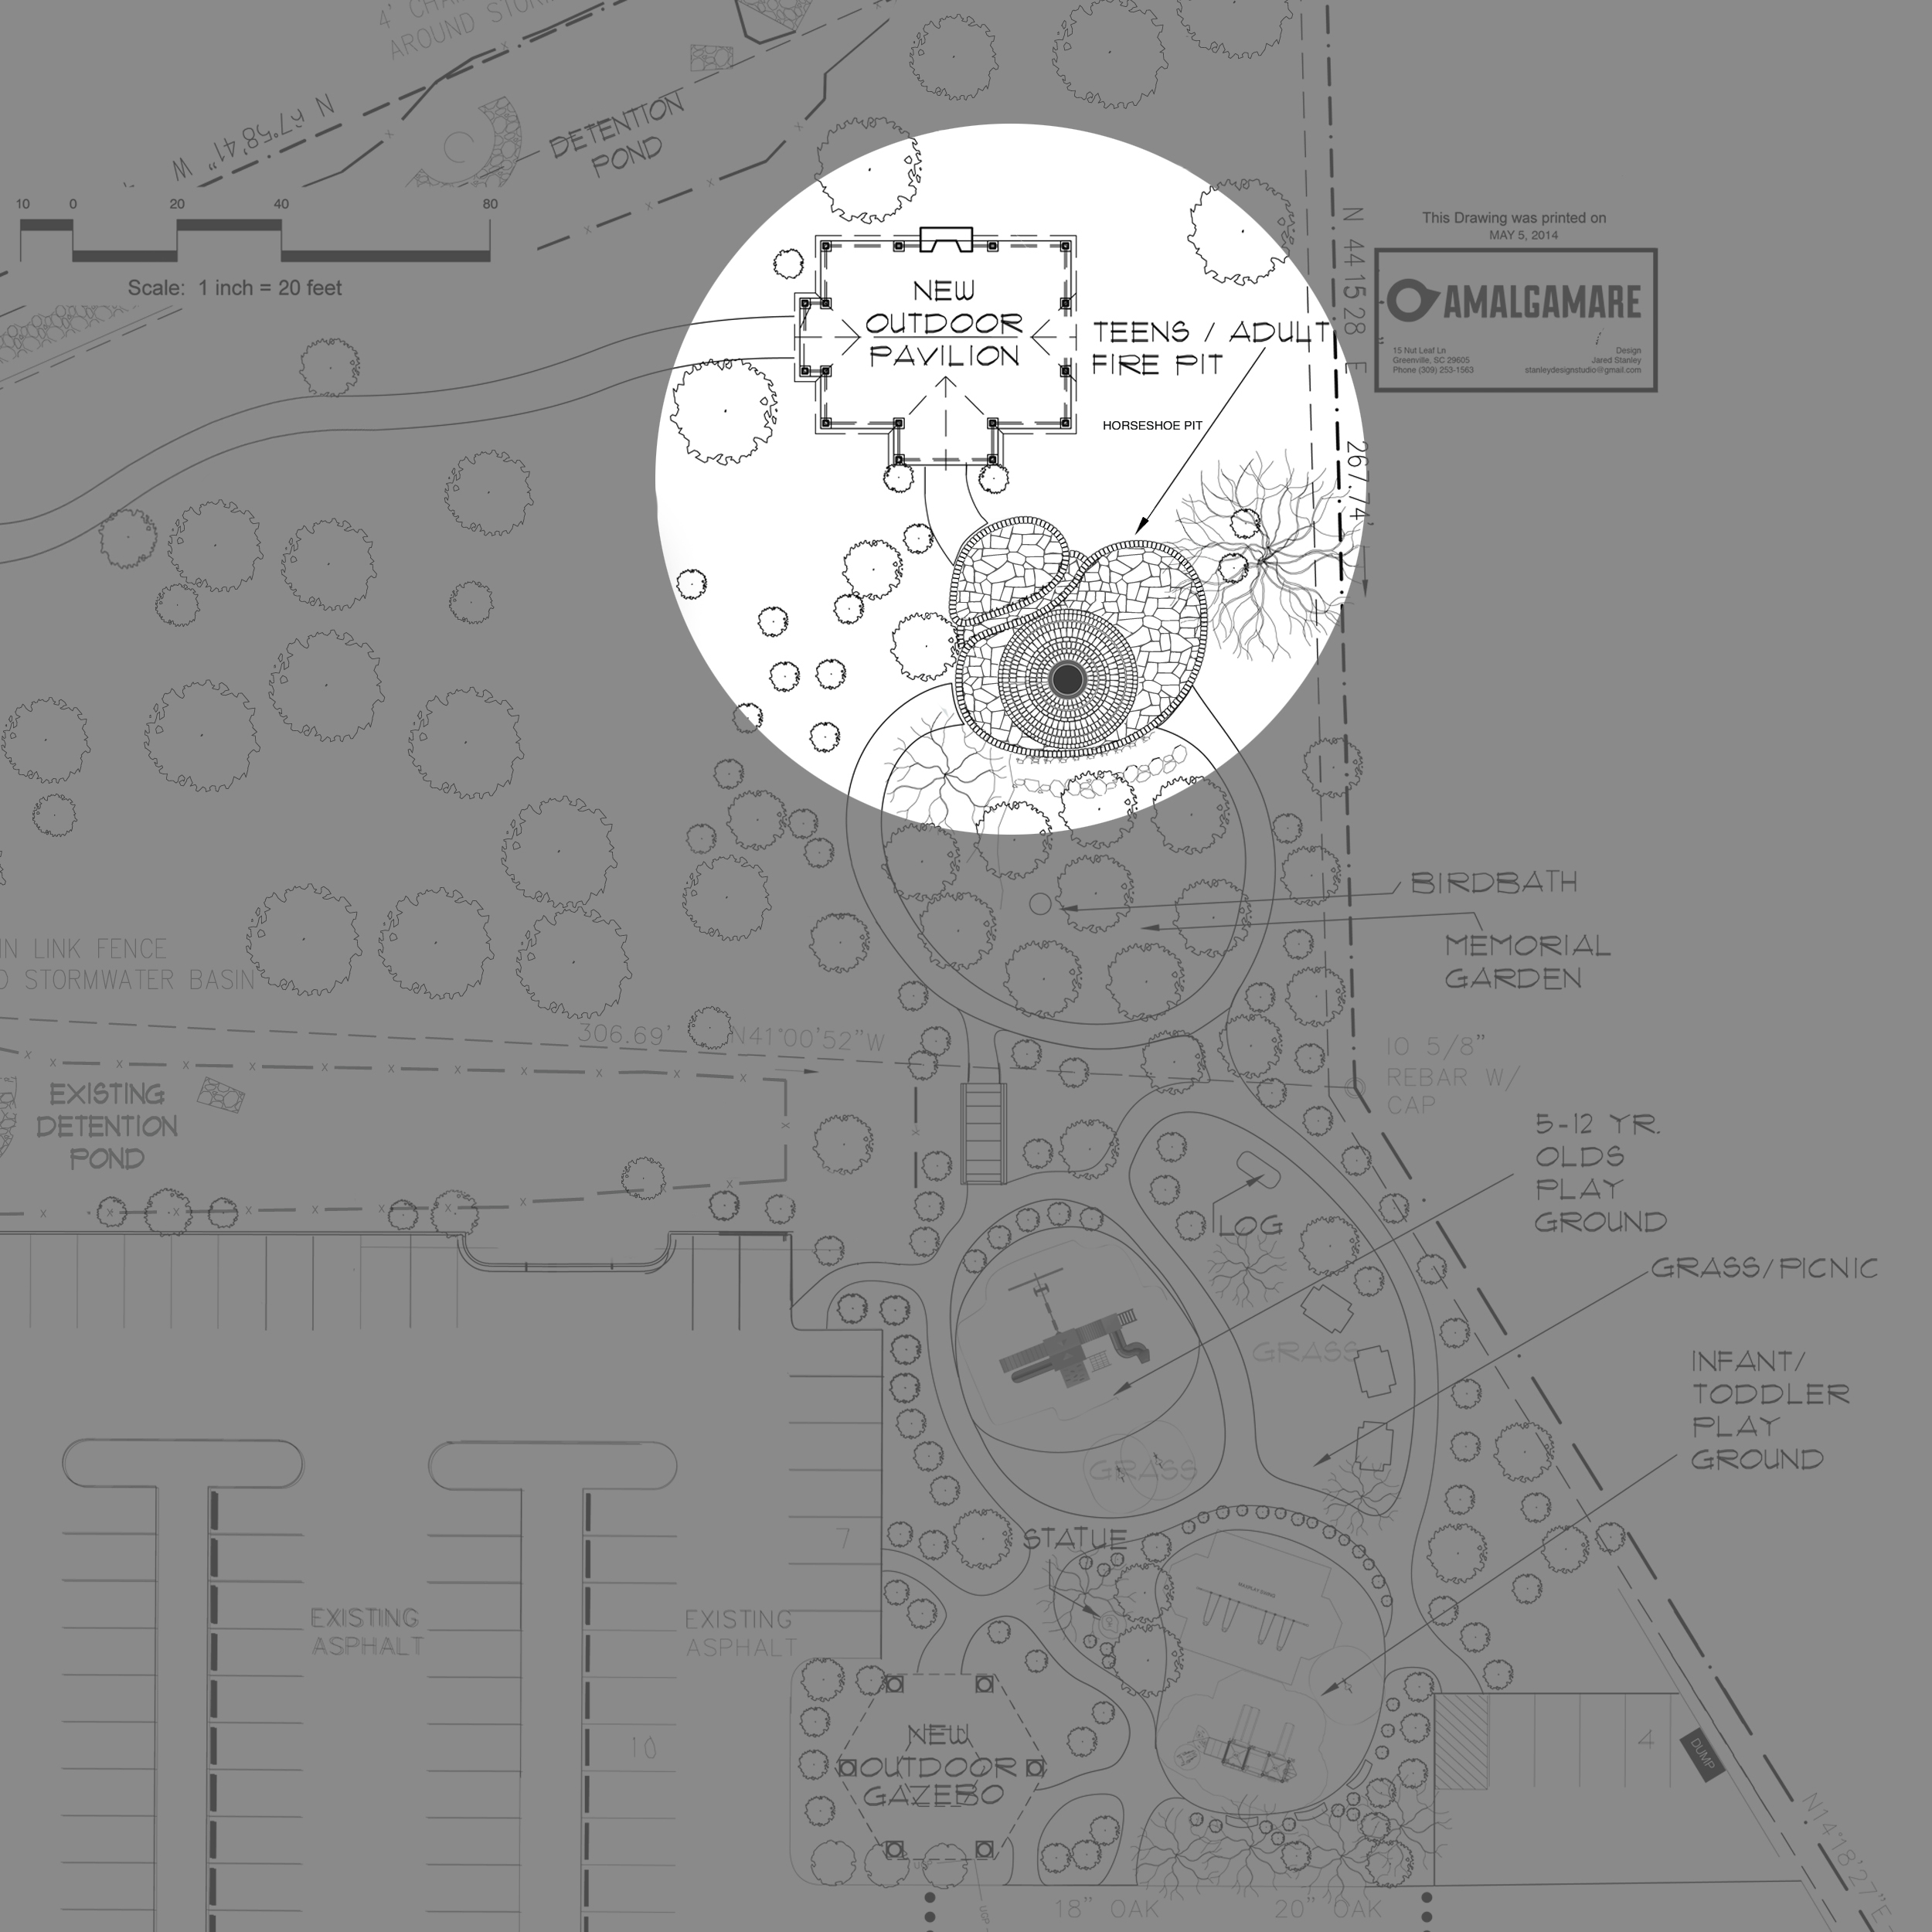 NEXT PHASE - For the next phase of the park*, we propose to hardscape the Teen/Adult firepit area to make it more stable and handicap accessible, build a new outdoor pavilion with running water and electricity, and expand our nature trails by cutting down surrounding small brush.